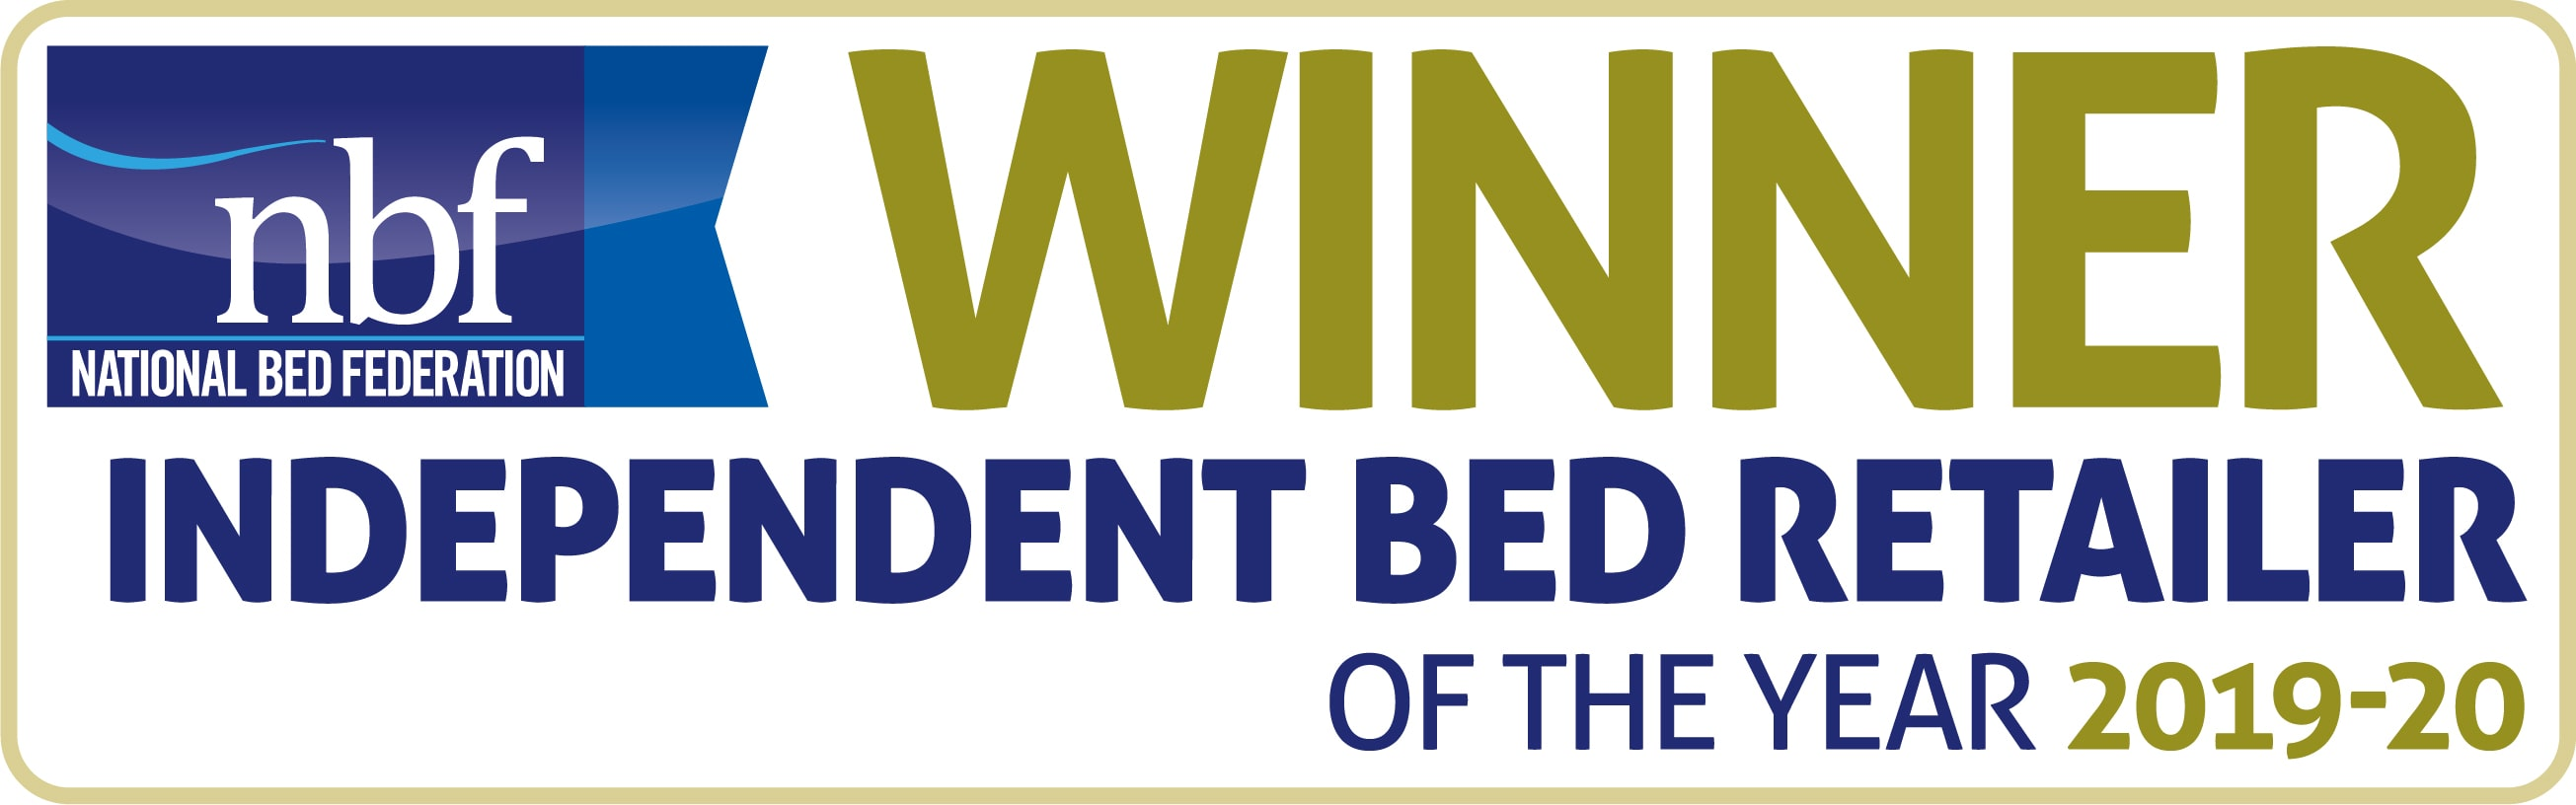 NBF Winner Independent Bed Retailer of the year 2019-2020